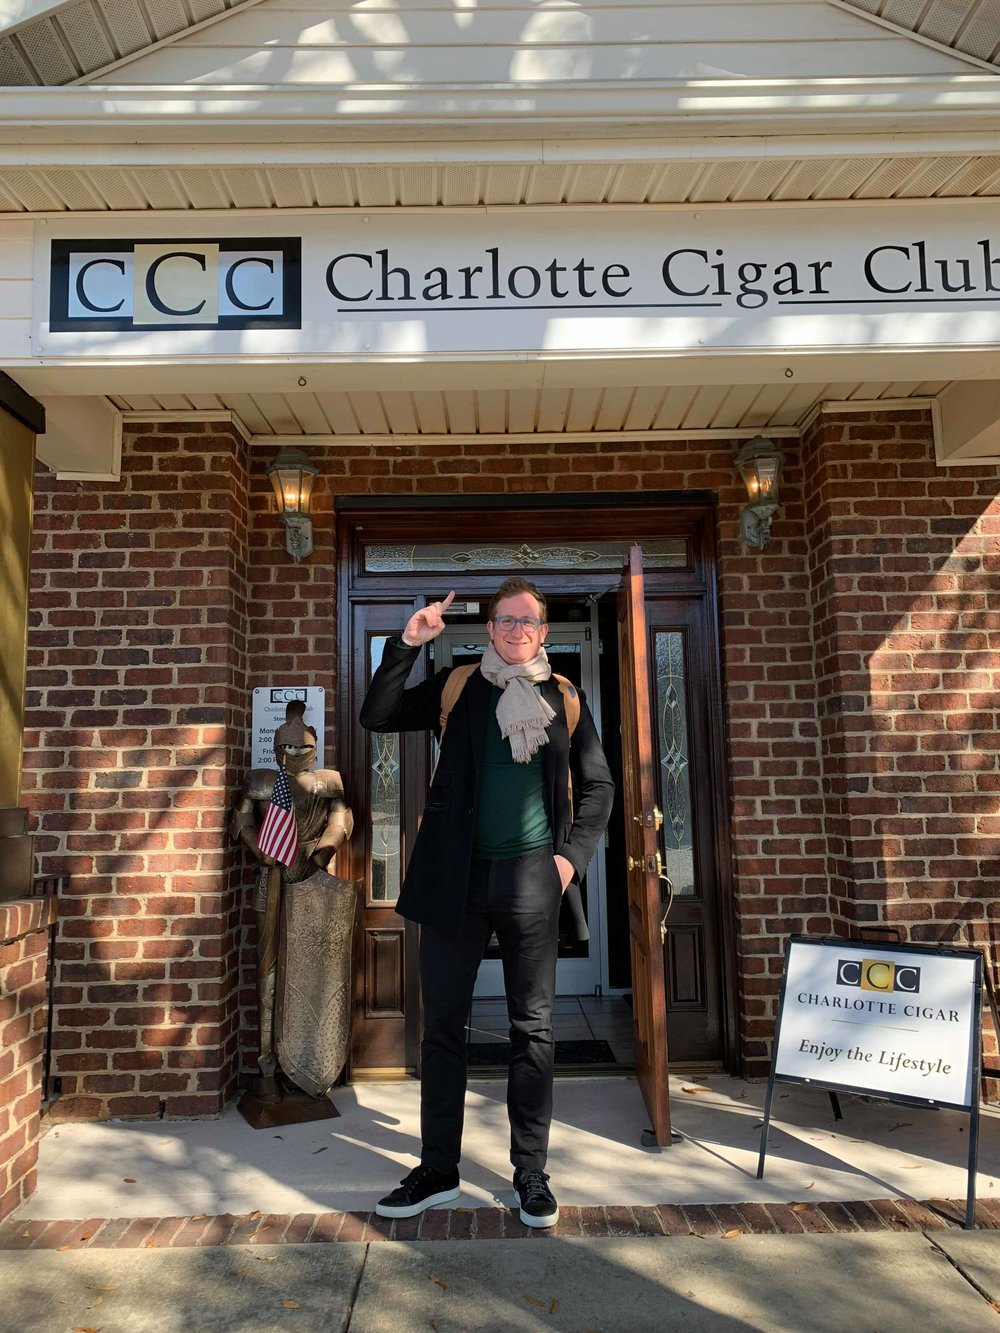 Jay's happy place, the Charlotte Cigar Club